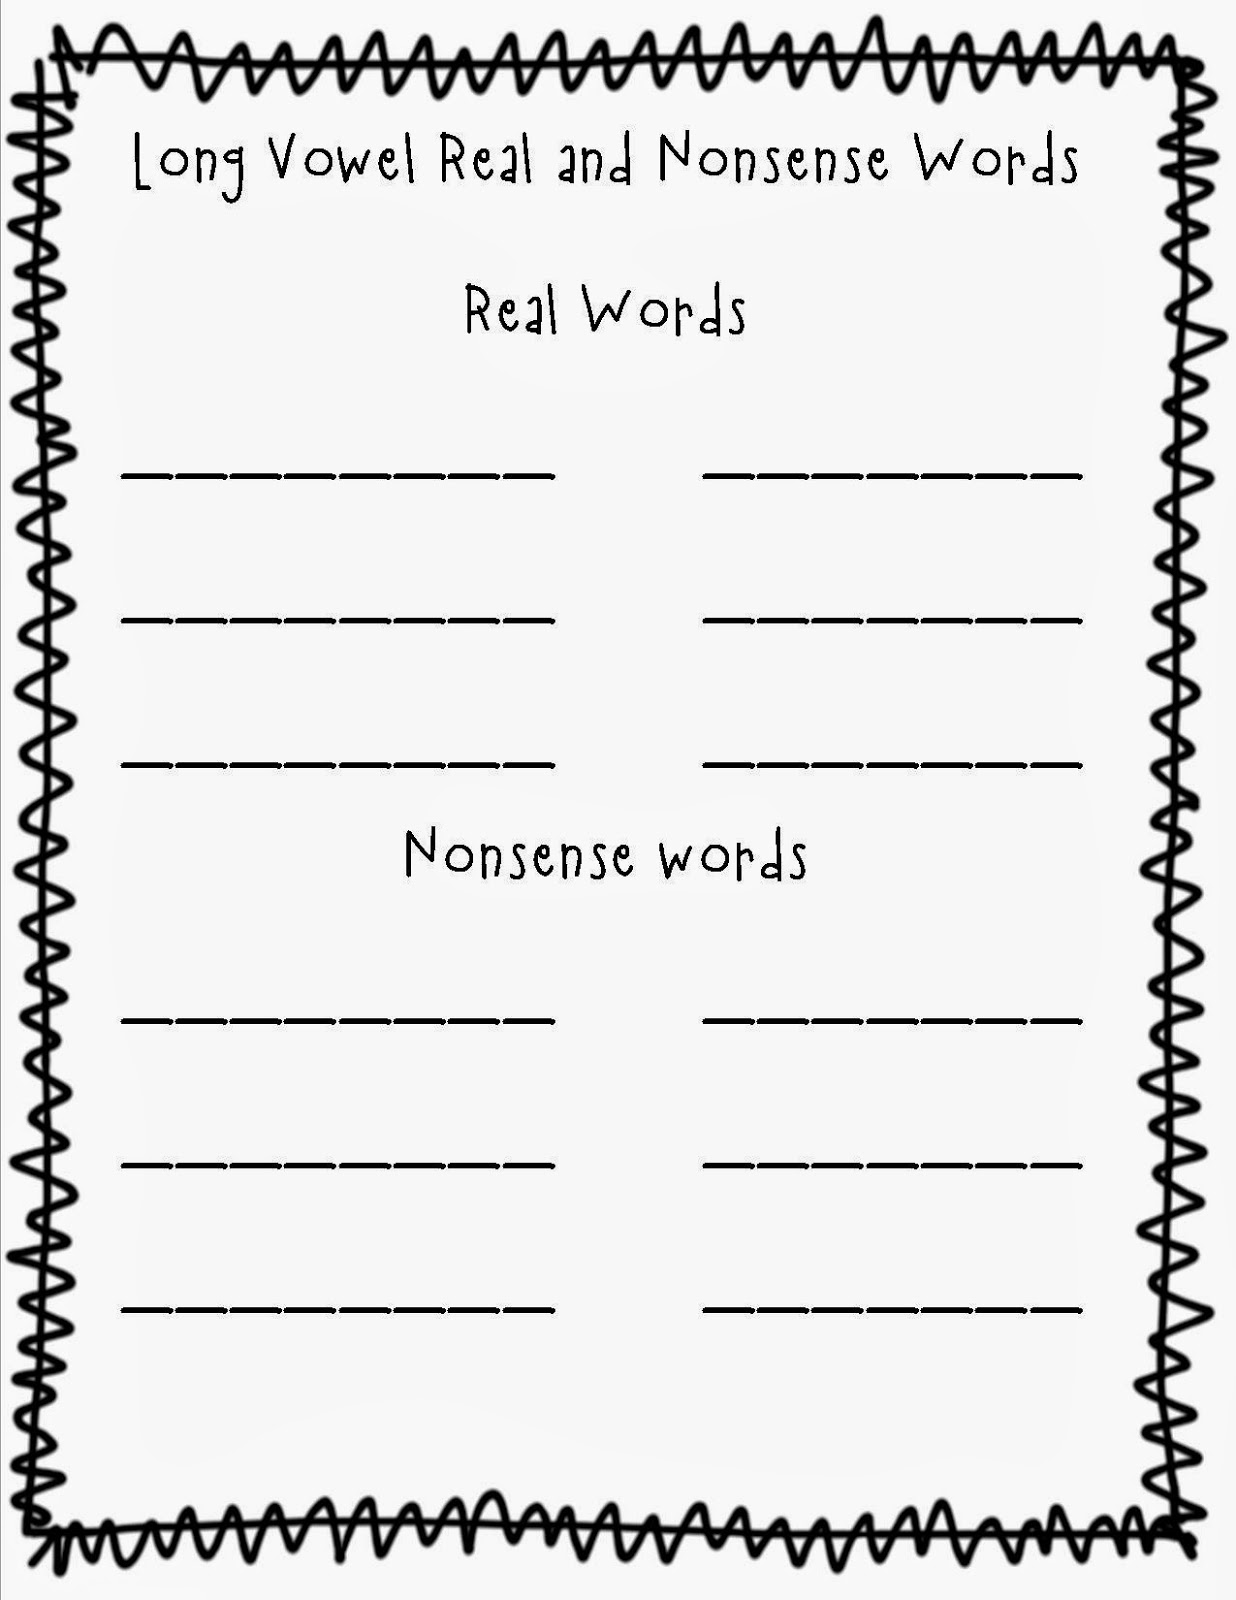 Long vowel coloring sheet - I Have Also Made Linking Cards I Cut These And Laminate Them Then Hole Punch Both Sides Of The Cards I Then Use The Plastic Links To Have The Students